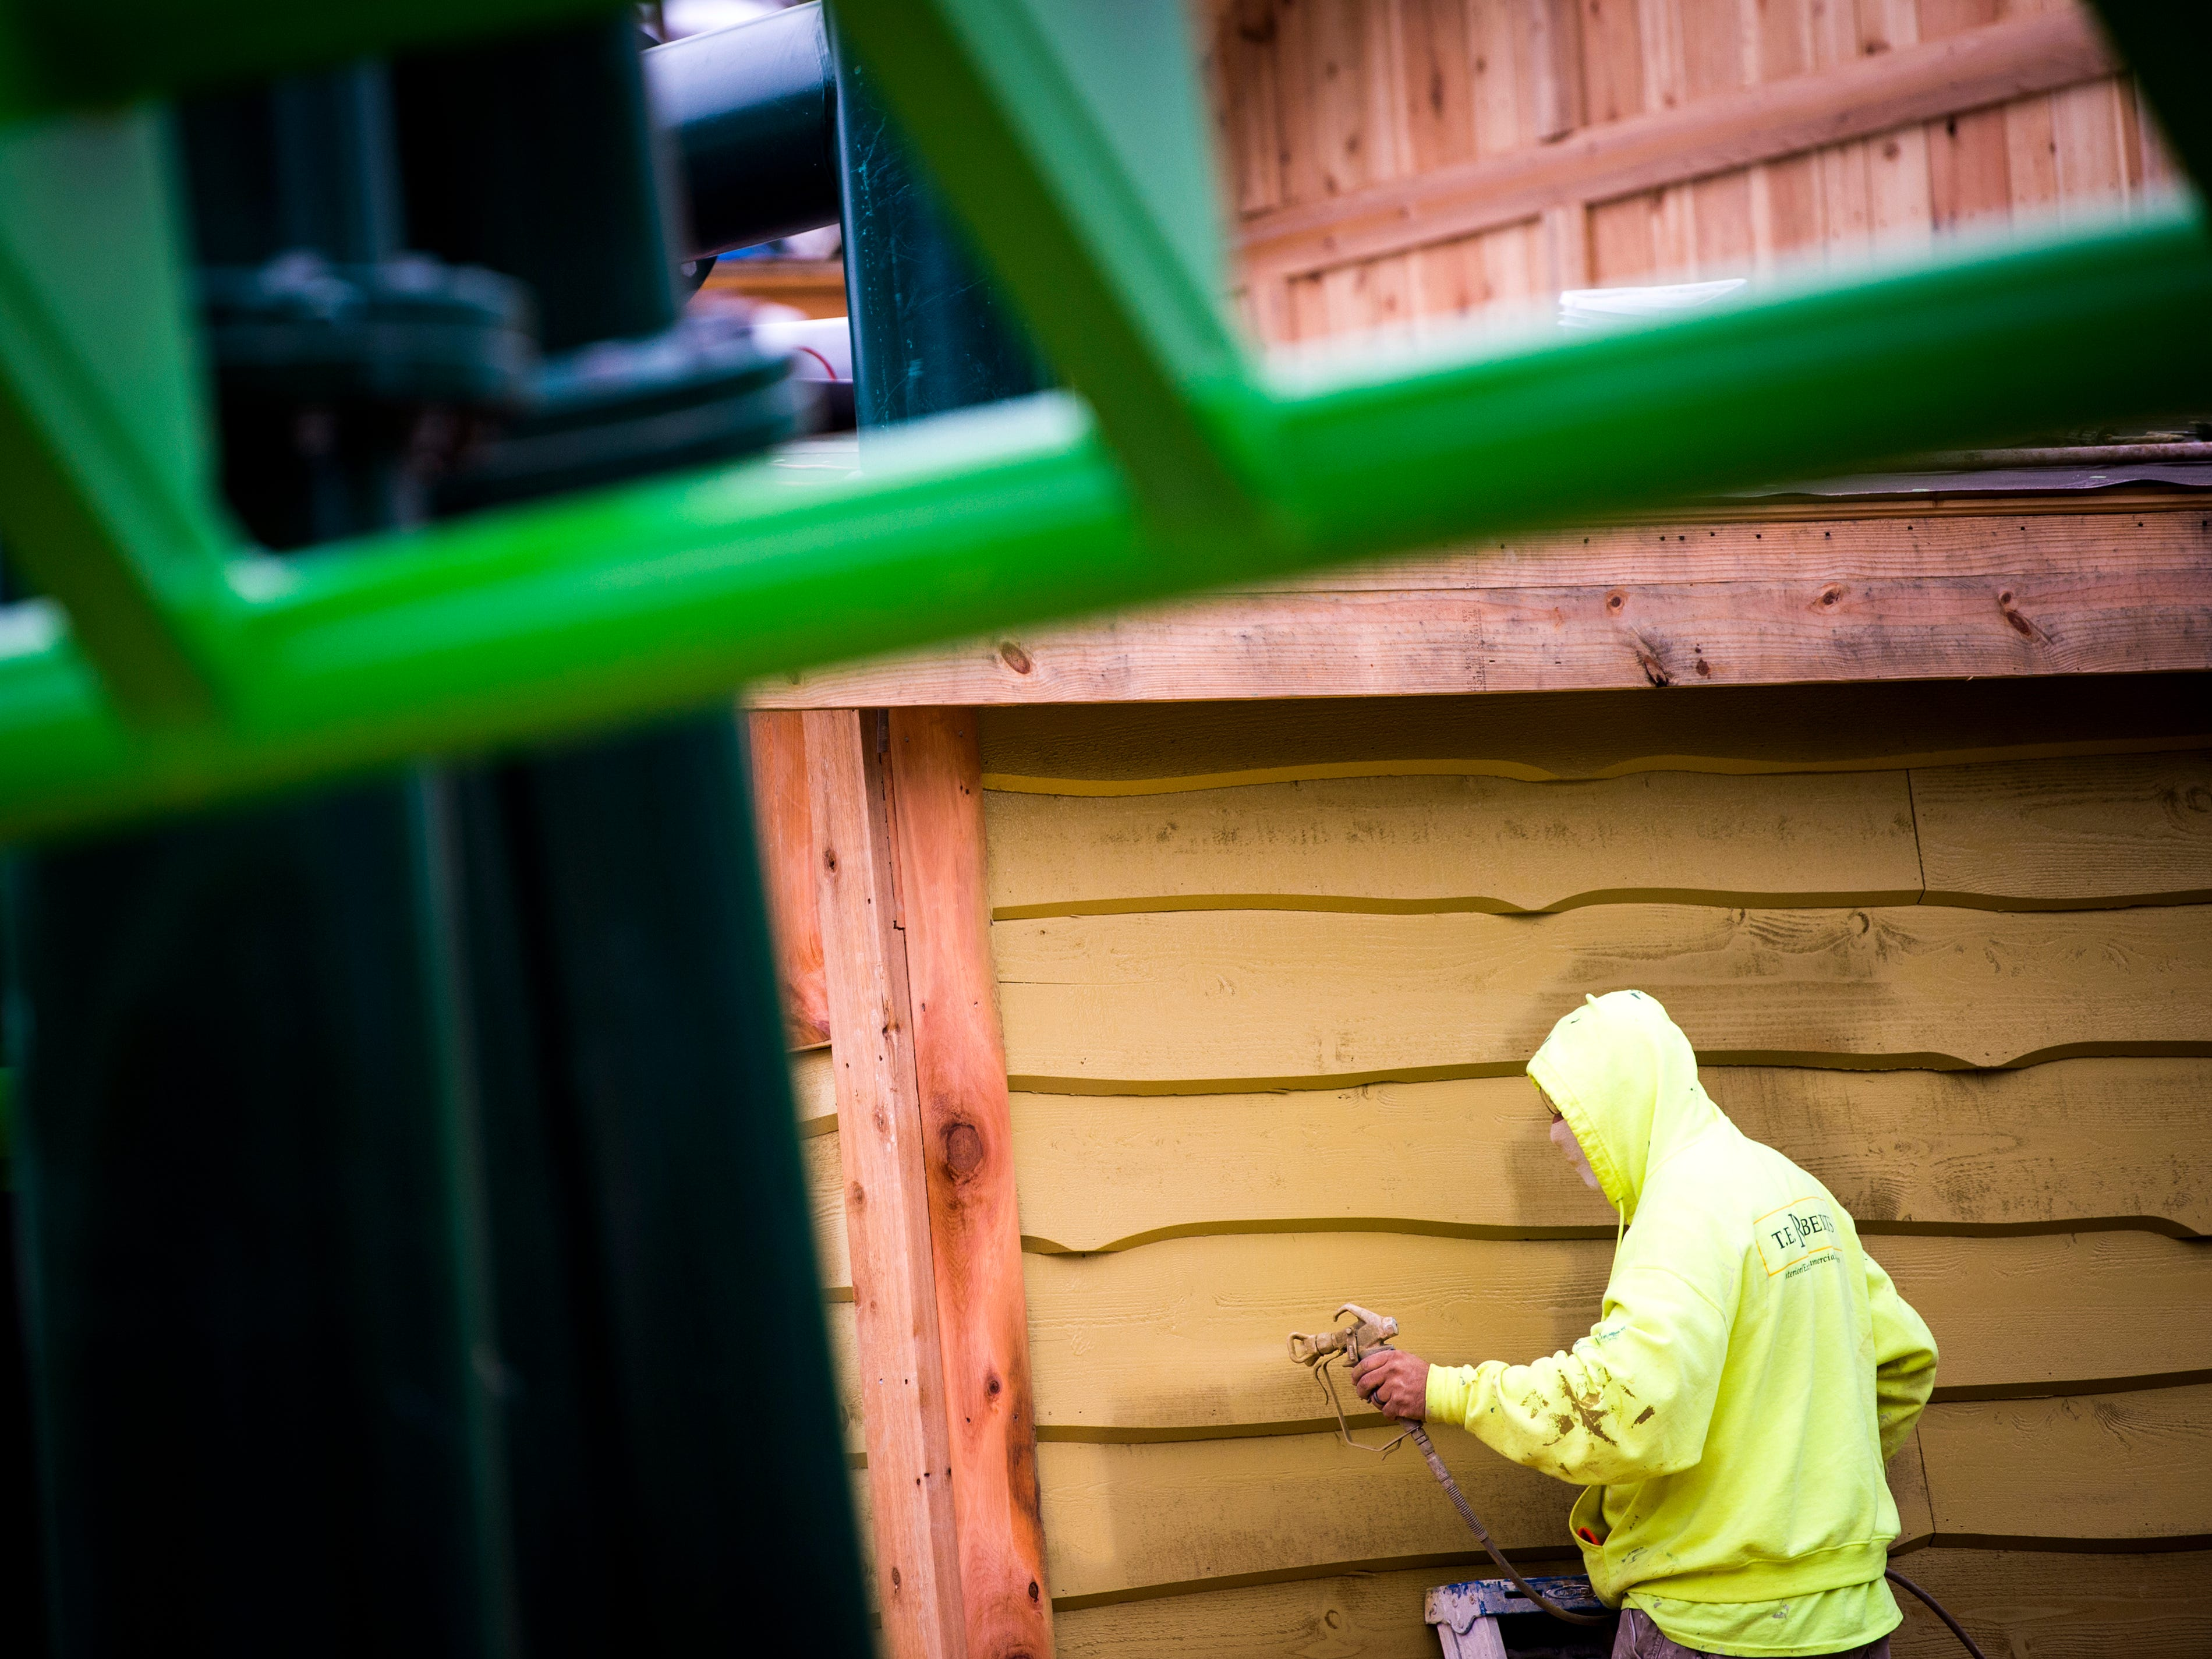 A construction worker adds paint to a building in Dollywood's new Wildwood Grove area of the park on Tuesday, February 19, 2019.